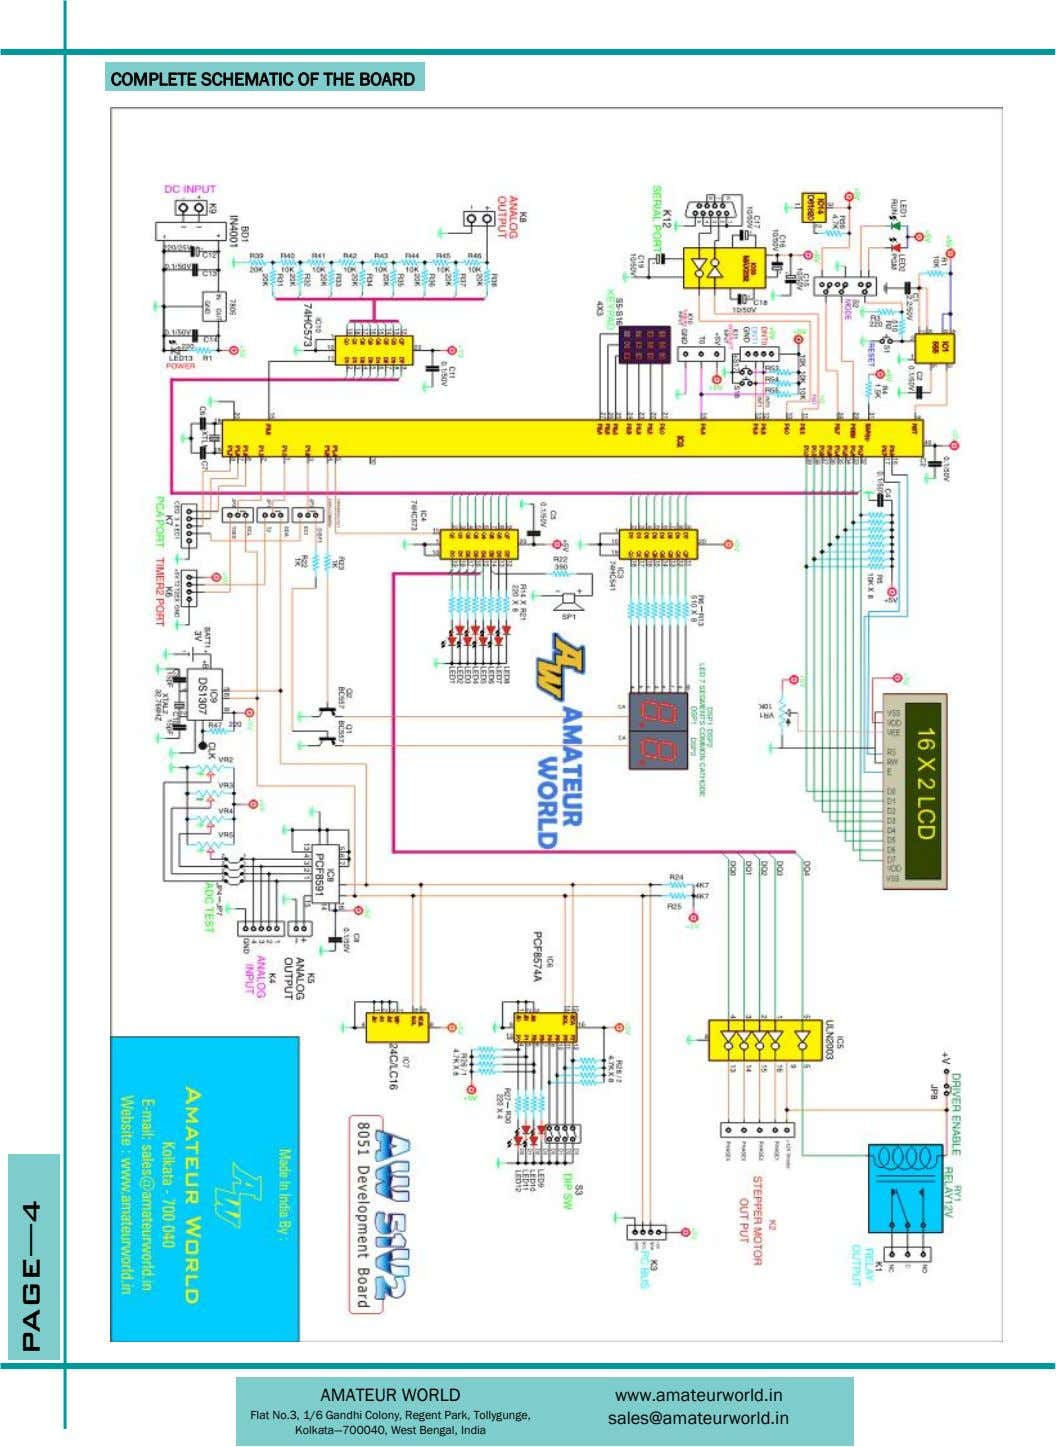 COMPLETE SCHEMATIC OF THE BOARD AMATEUR WORLD www.amateurworld.in Flat No.3, 1/6 Gandhi Colony, Regent Park,